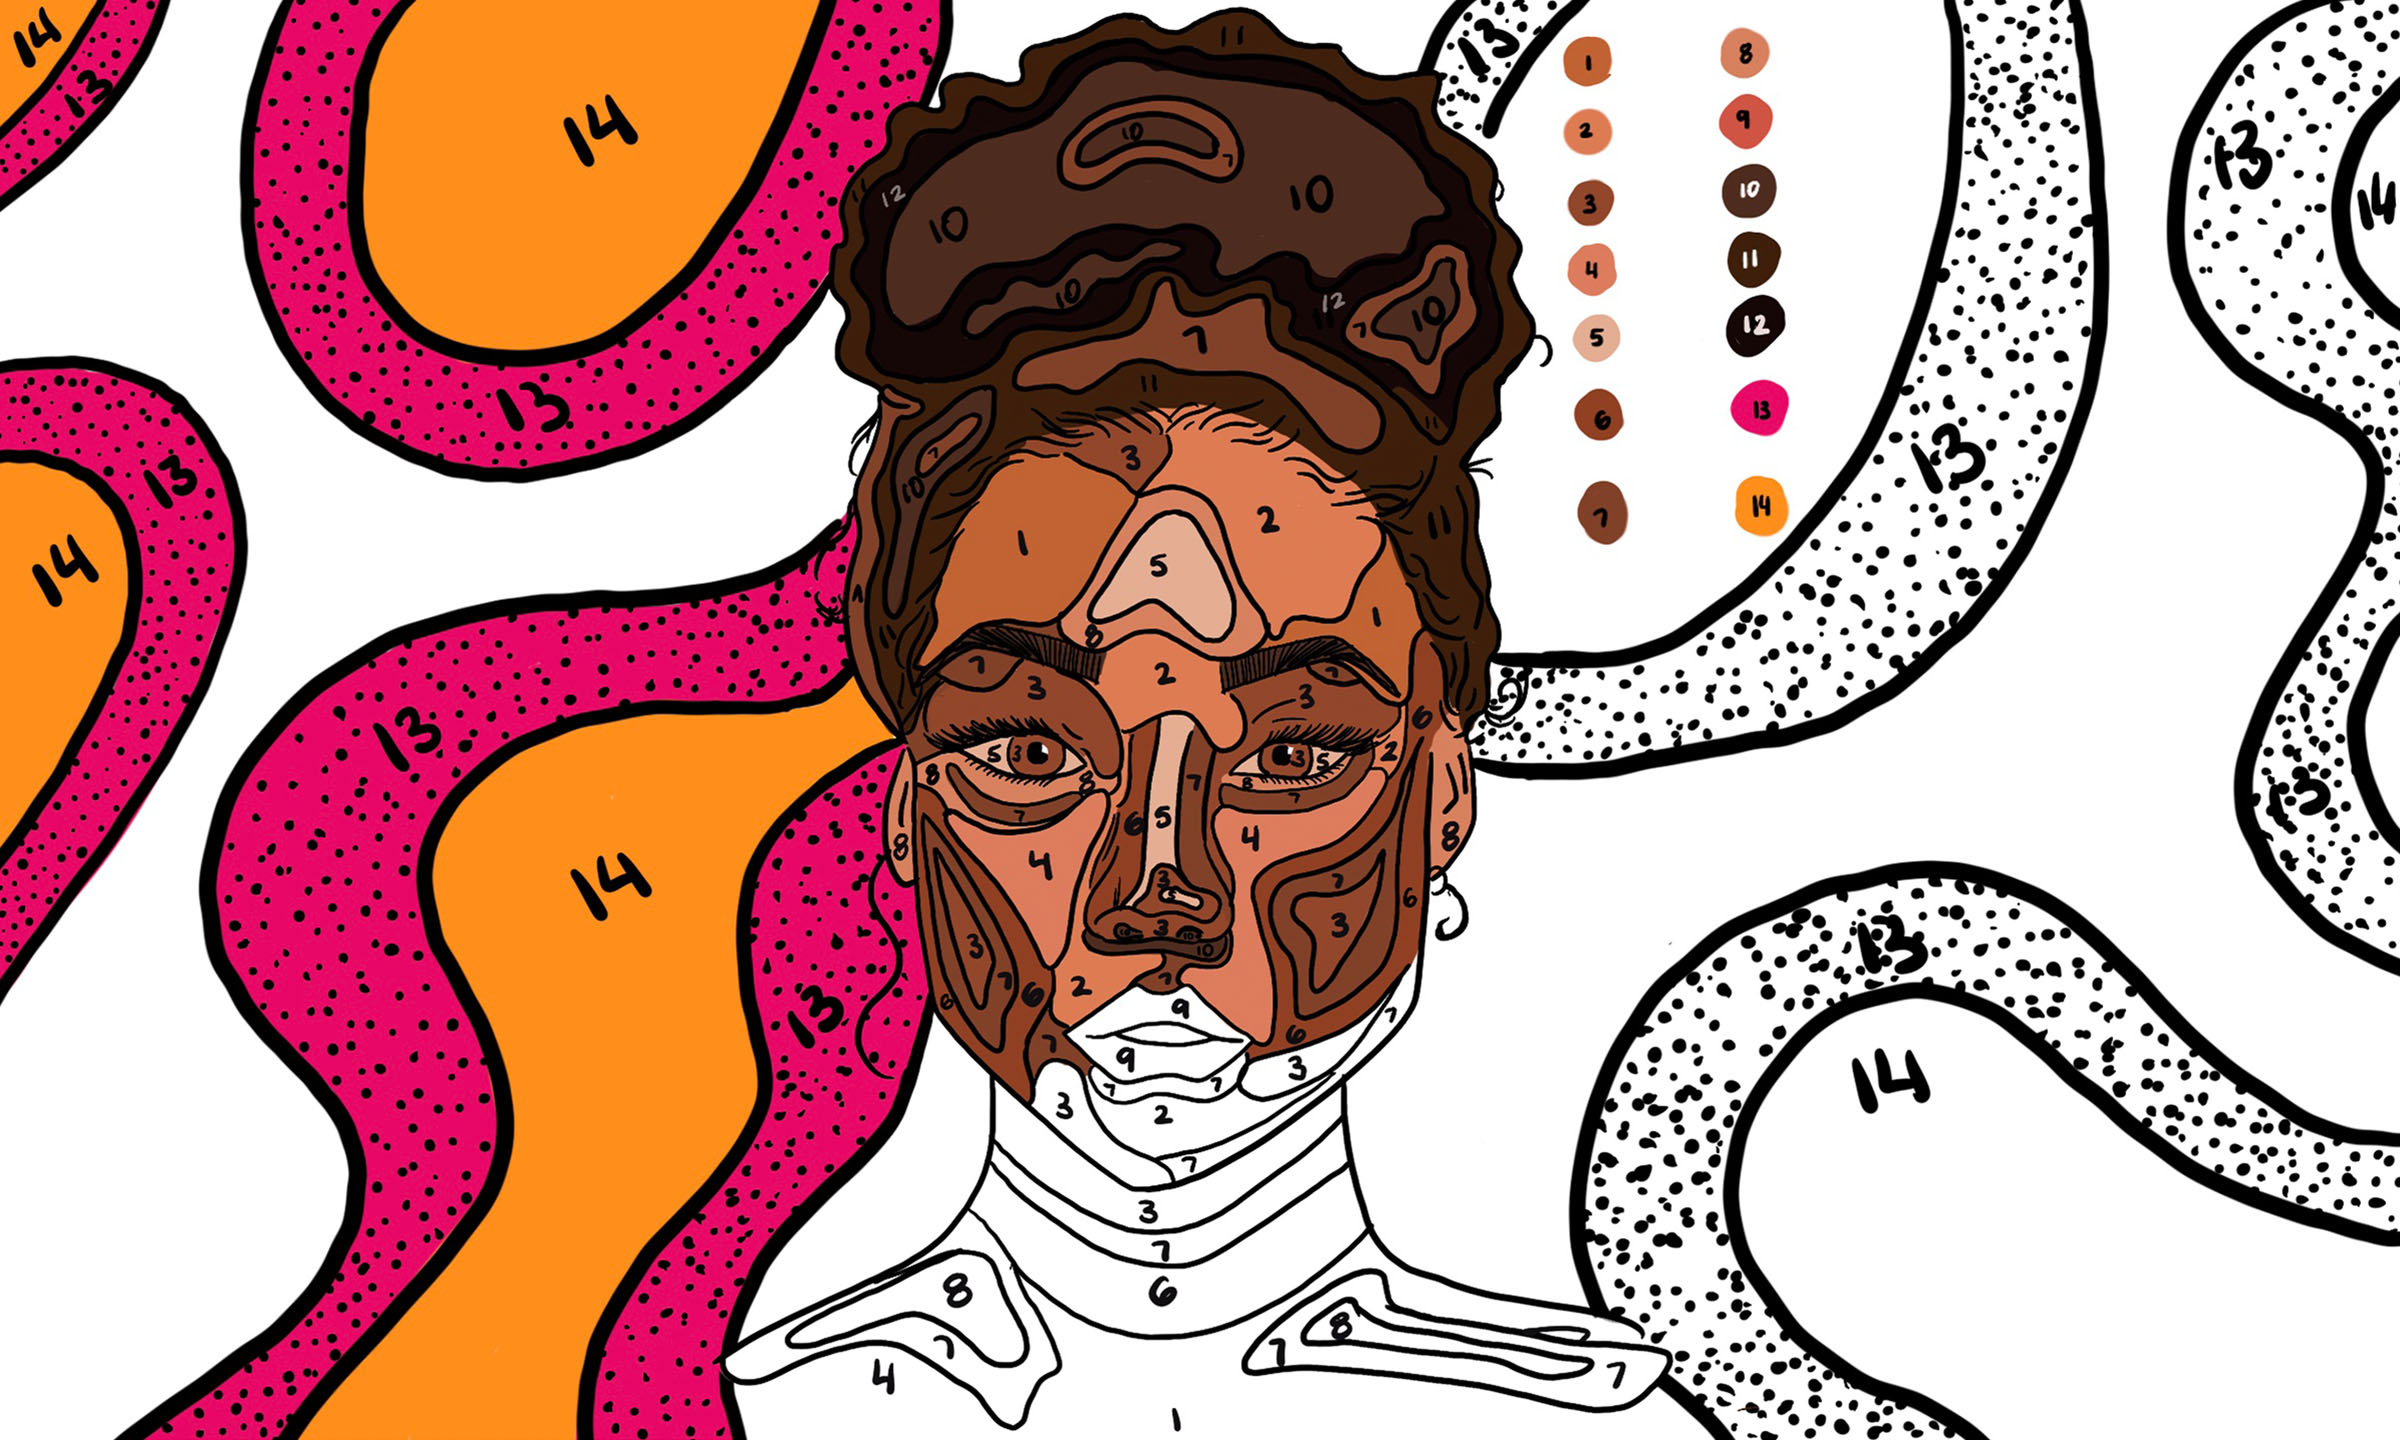 An illustration of a woman depicted in a paint-by-numbers fashion, with half of her face colored in and half not —a metaphor to describe the lack of information some providers have with patients and prescriptions.